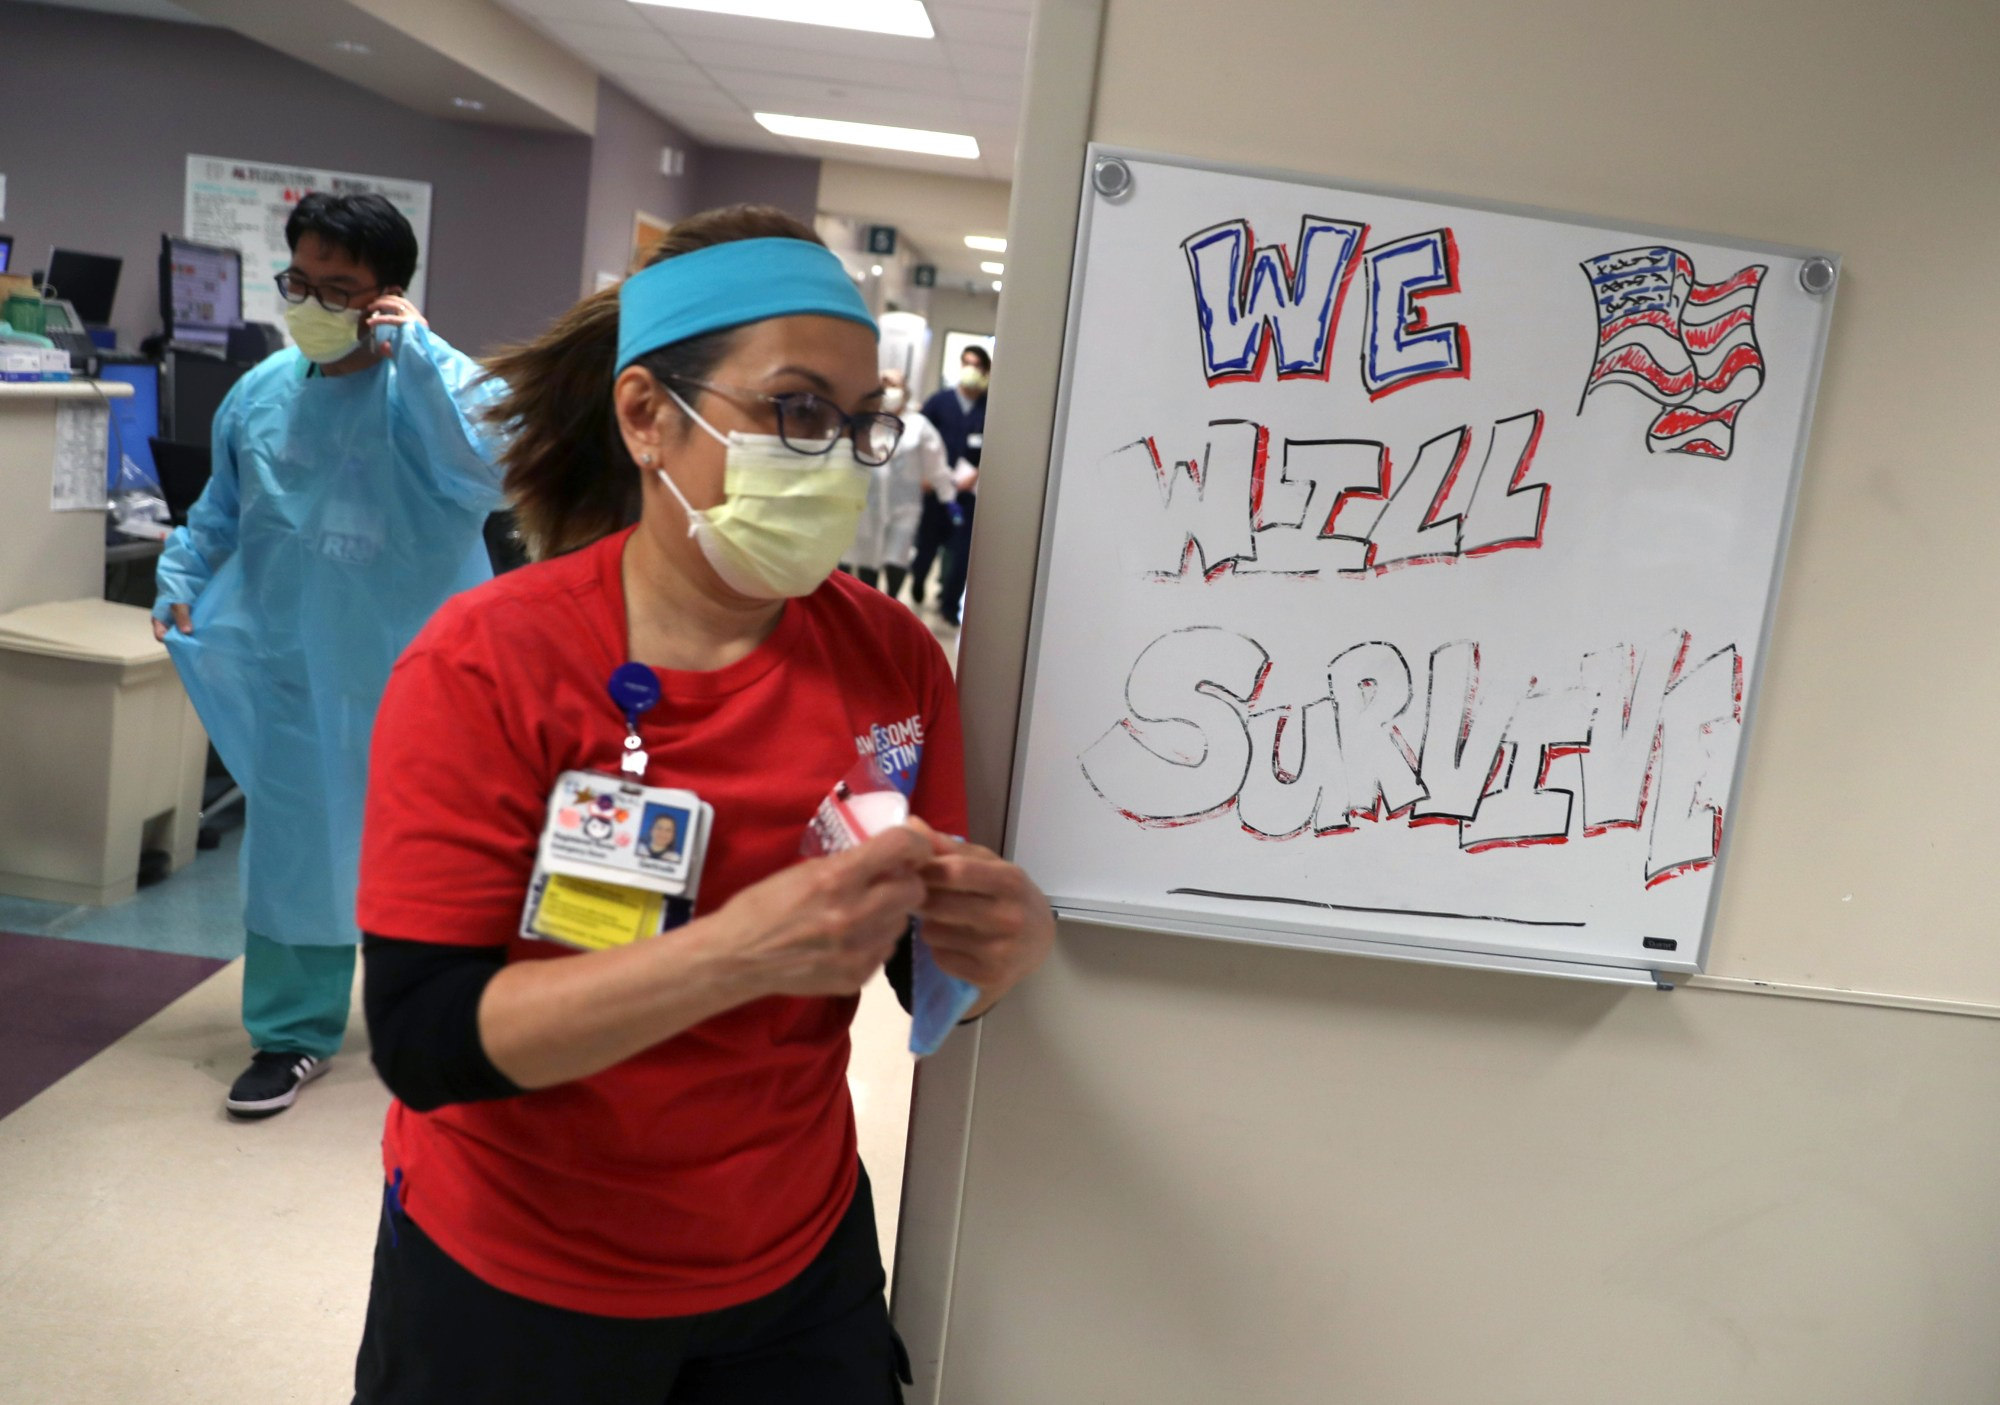 Nurses rush to meet with a patient being admitted to the emergency room at Regional Medical Center on May 21, 2020 in San Jose, California. (Justin Sullivan/Getty Images)